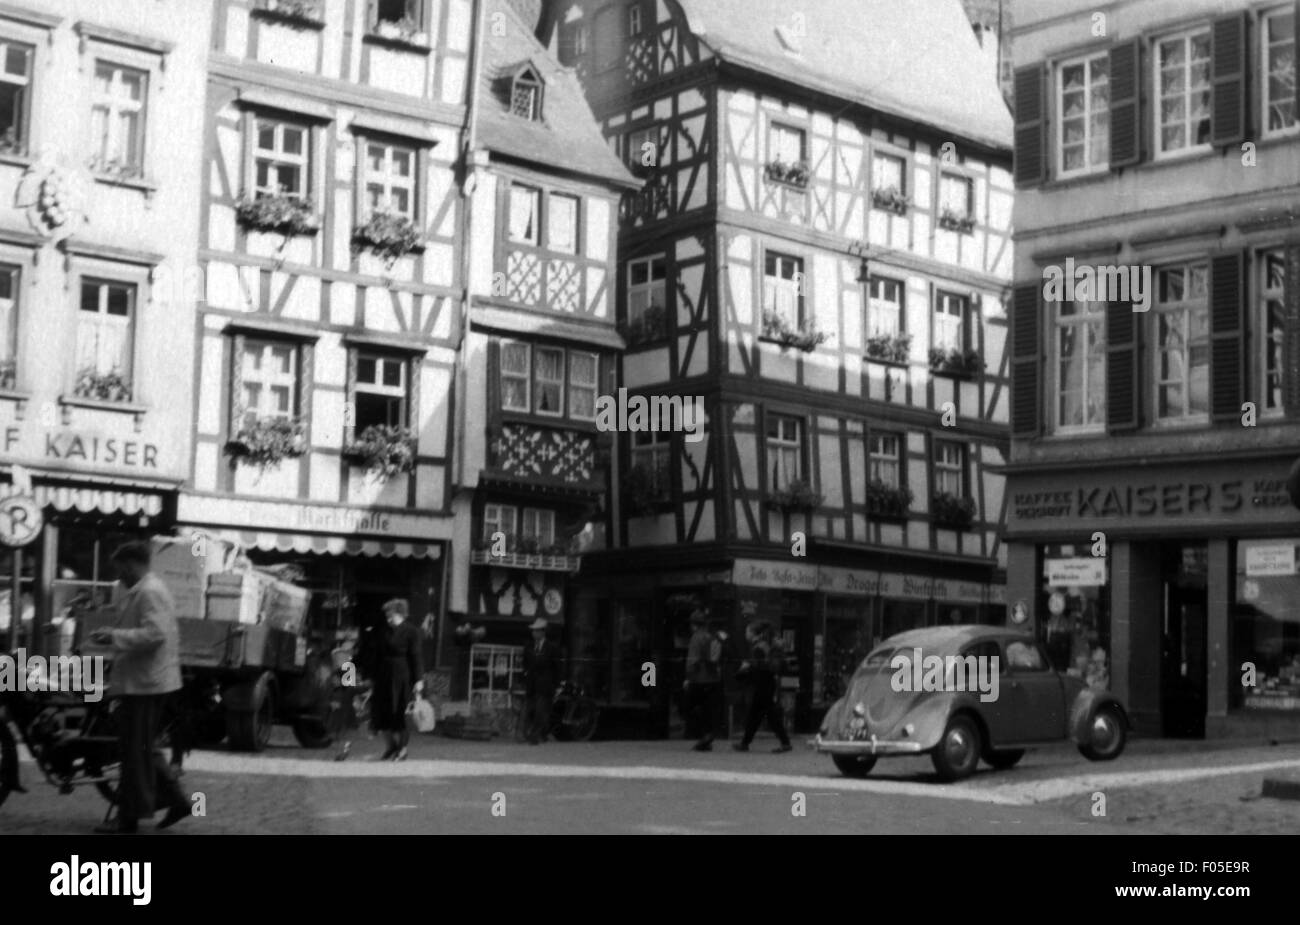 geography / travel, Germany, Rhineland-Palatinate, Bernkastel-Kues, squares, marketplace, first half 1950s, Additional - Stock Image